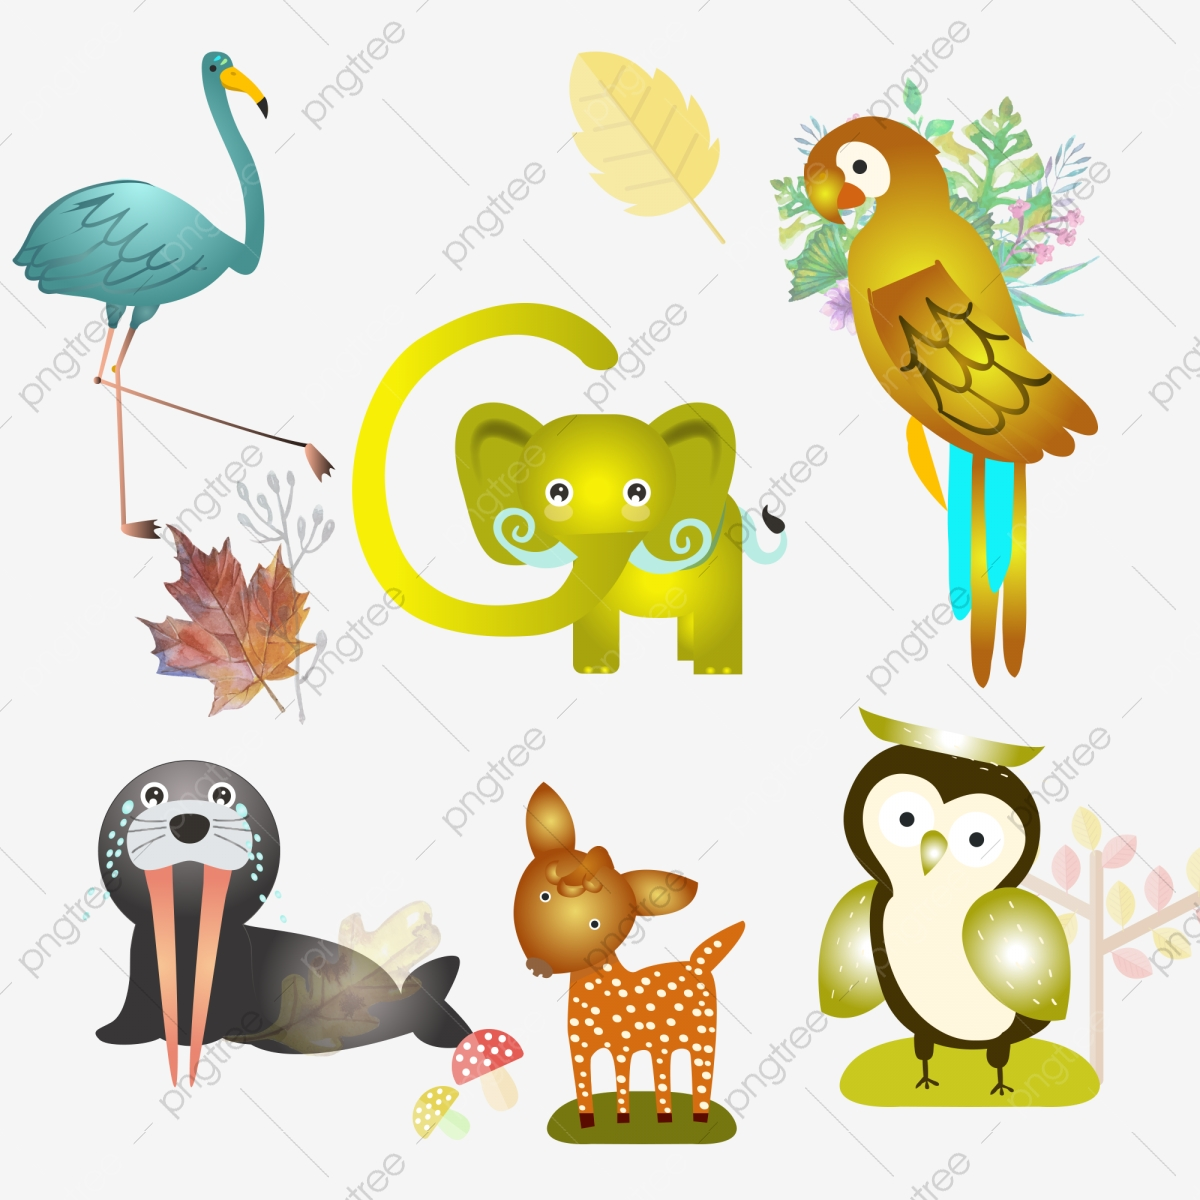 Animal De Bande Dessinee Petit Oiseau Pie Elephant Pleure Lion De